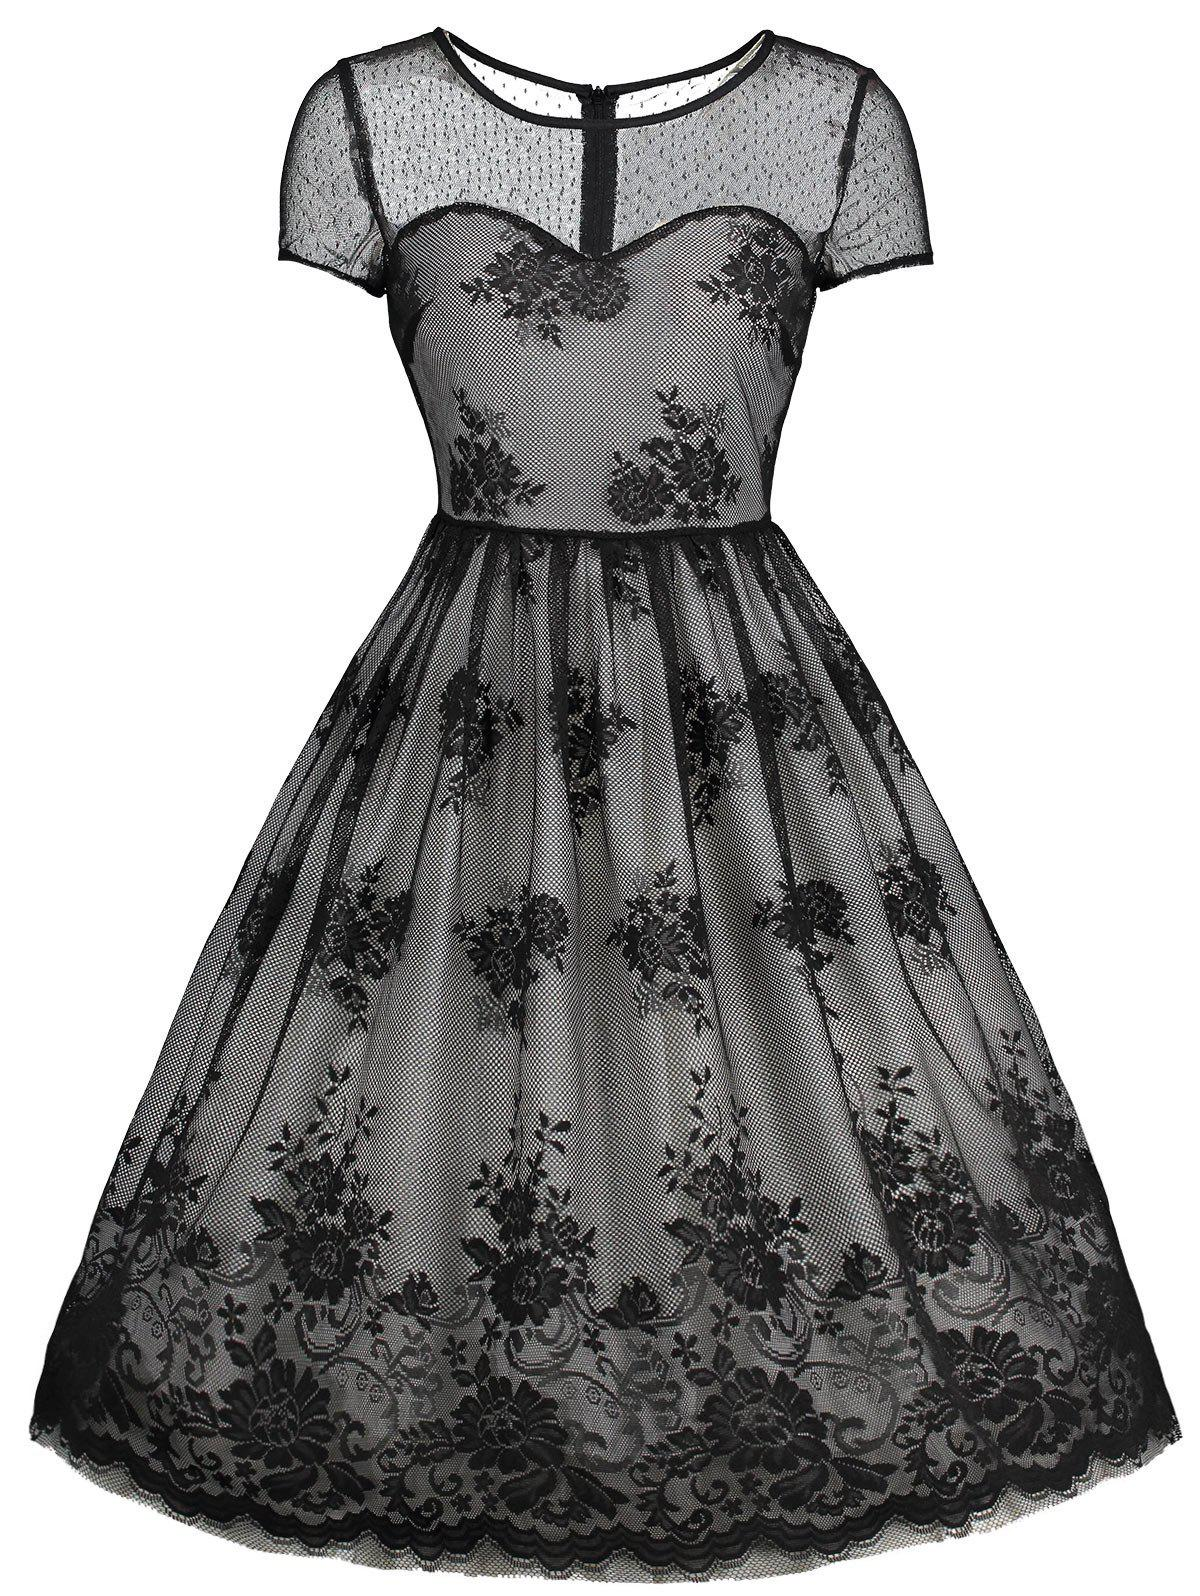 Vintage Overlay Floral Lace Short Mesh DressWOMEN<br><br>Size: 2XL; Color: BLACK; Style: Vintage; Material: Polyester; Silhouette: A-Line; Dresses Length: Knee-Length; Neckline: Round Collar; Sleeve Length: Short Sleeves; Embellishment: Lace,Mesh; Pattern Type: Solid; With Belt: No; Season: Fall,Spring,Summer,Winter; Weight: 0.3800kg; Package Contents: 1 x Dress;